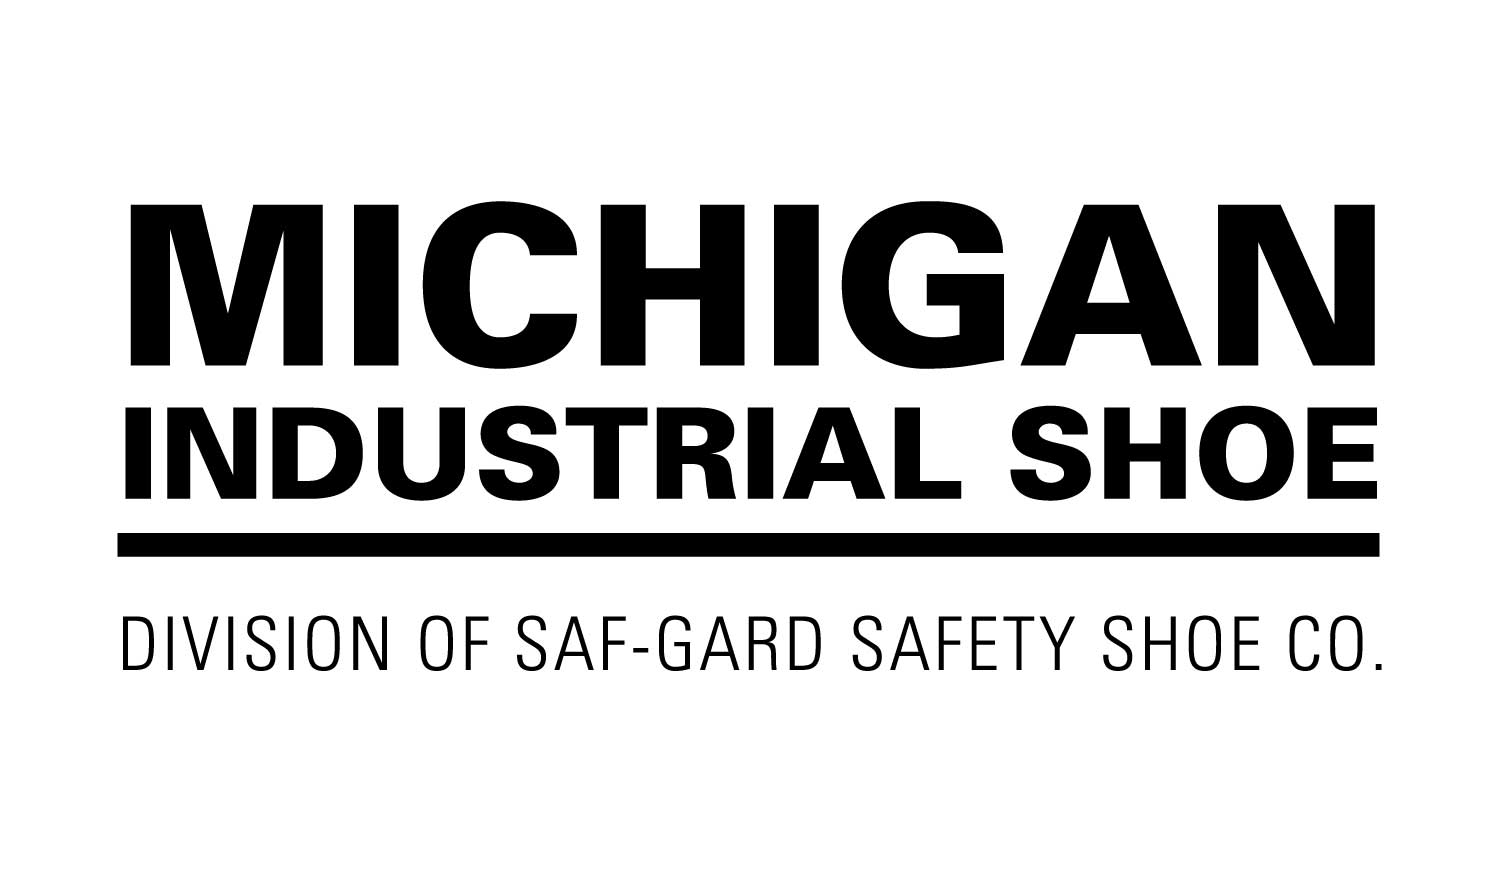 Michigan Industrial Shoe